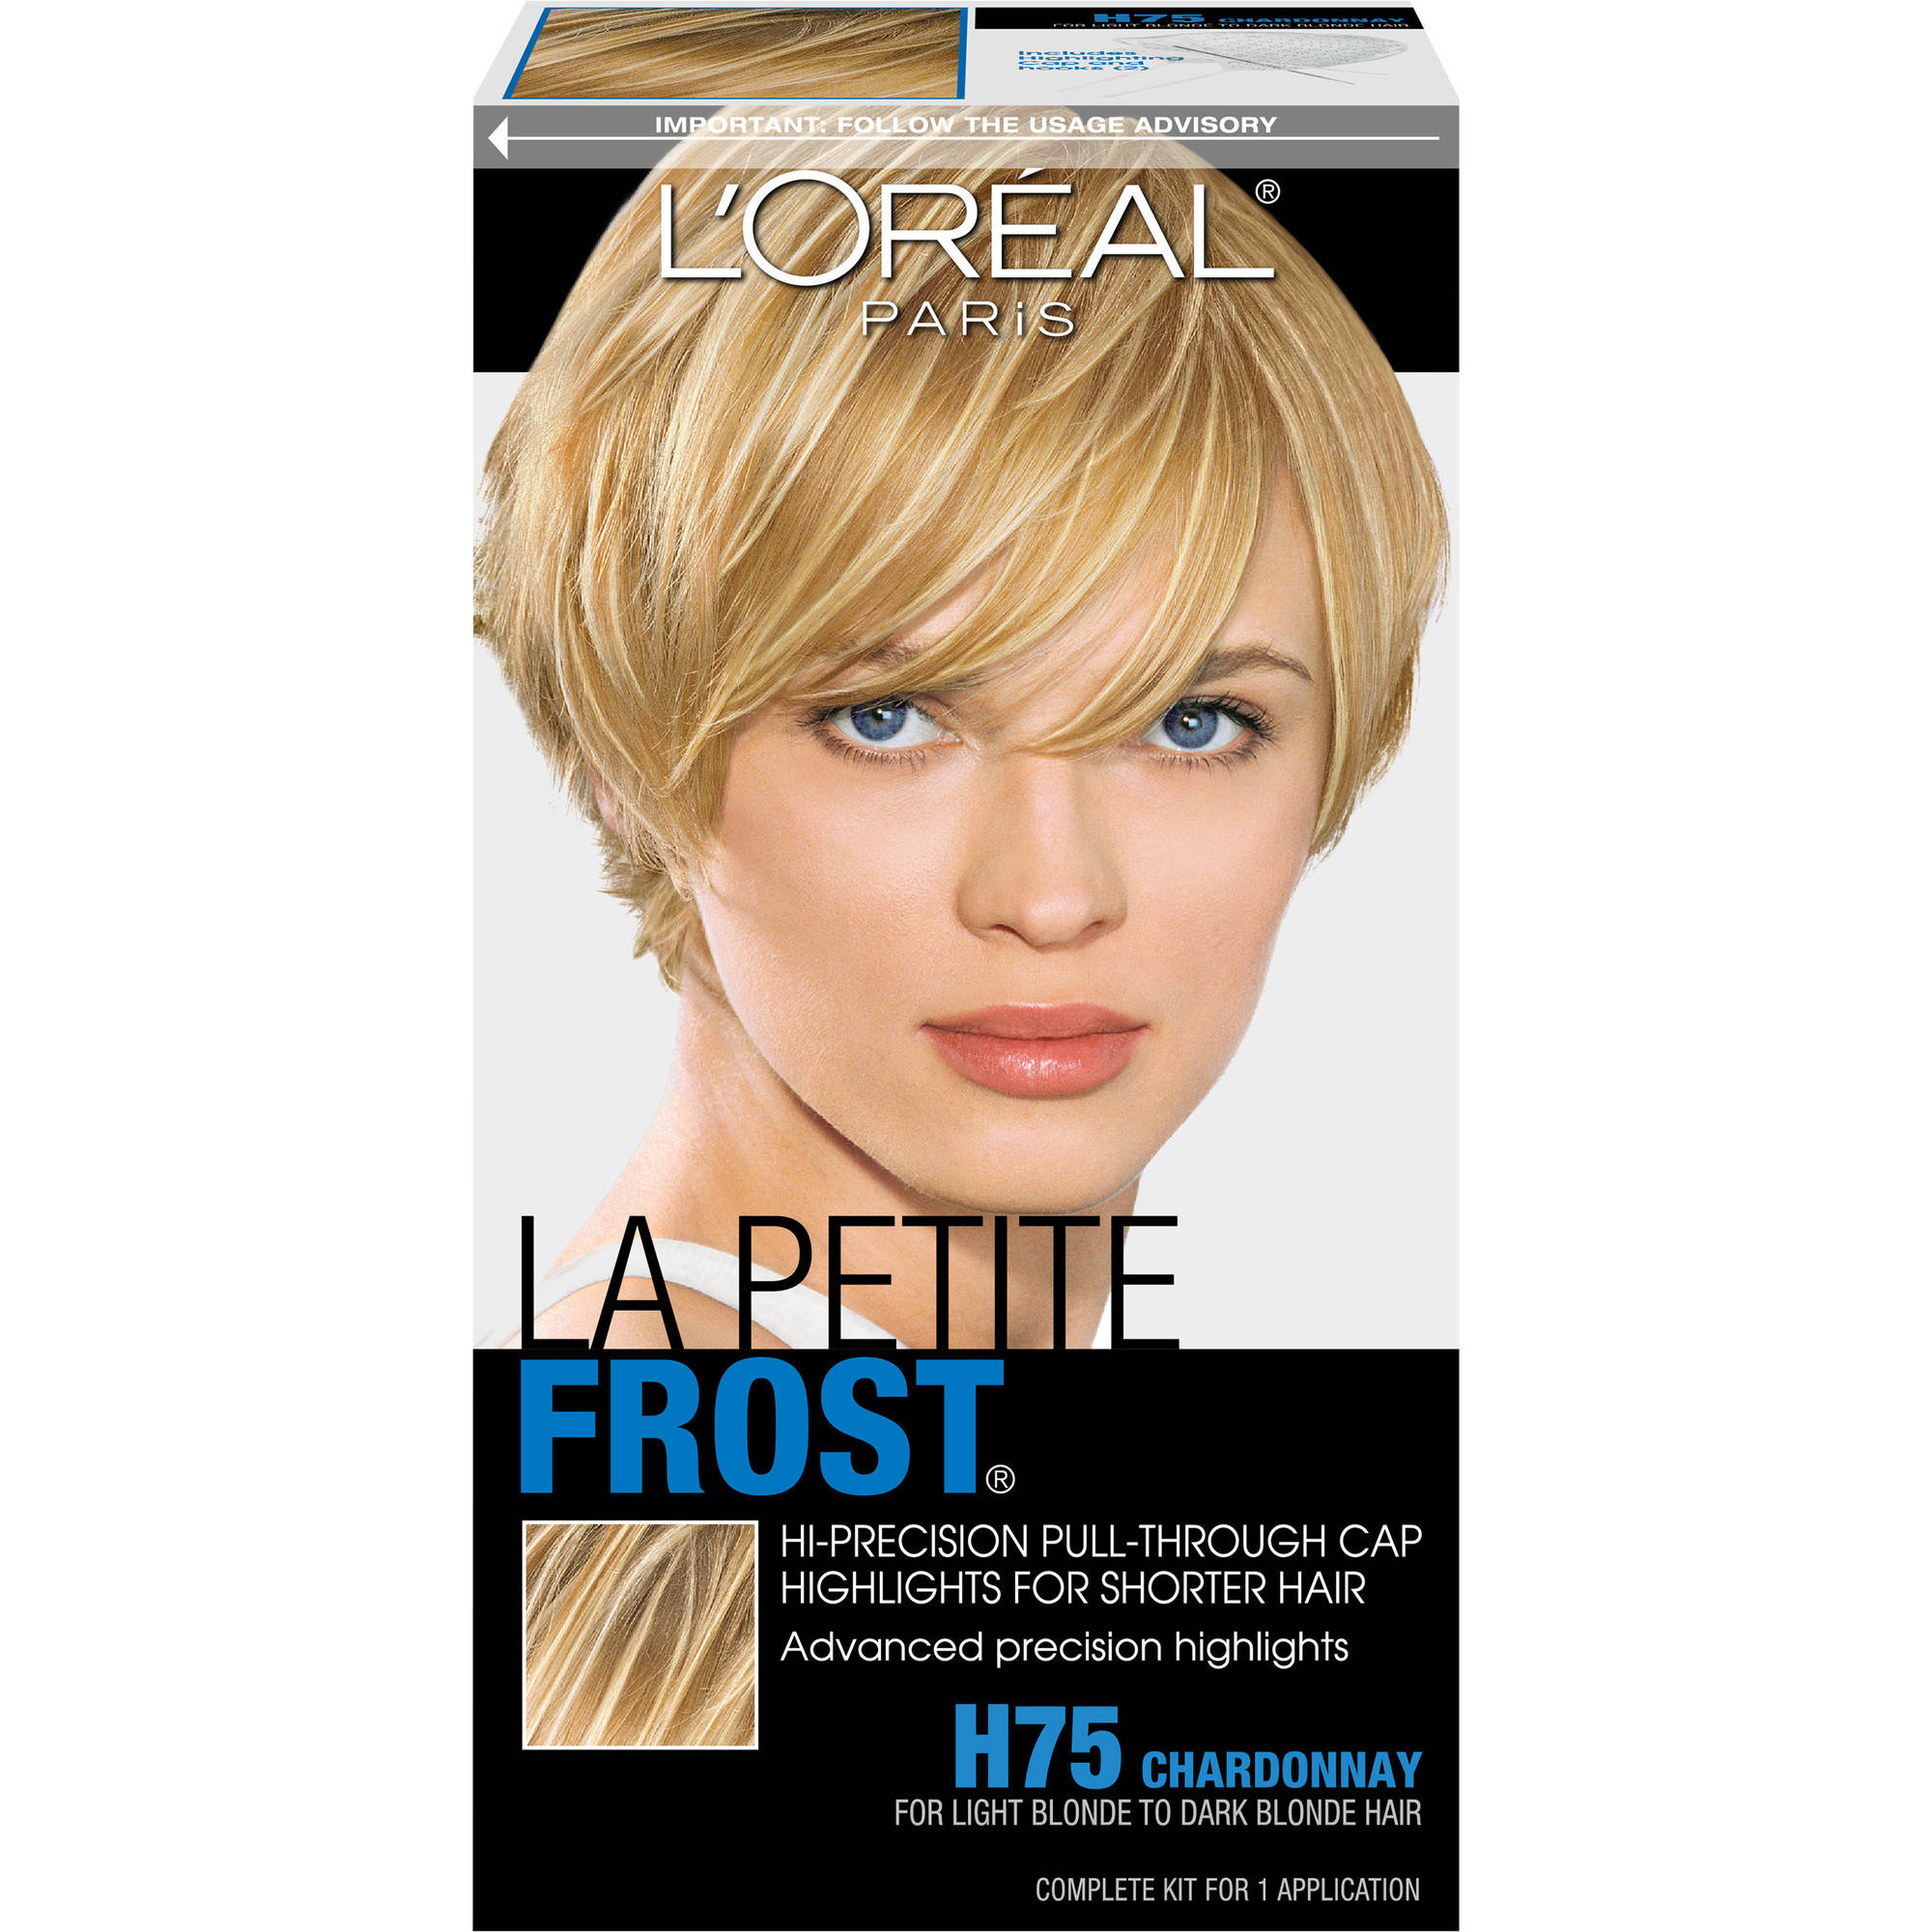 L'Oreal Paris La Petite Frost Highlights Hair Color, H75 Chardonnay